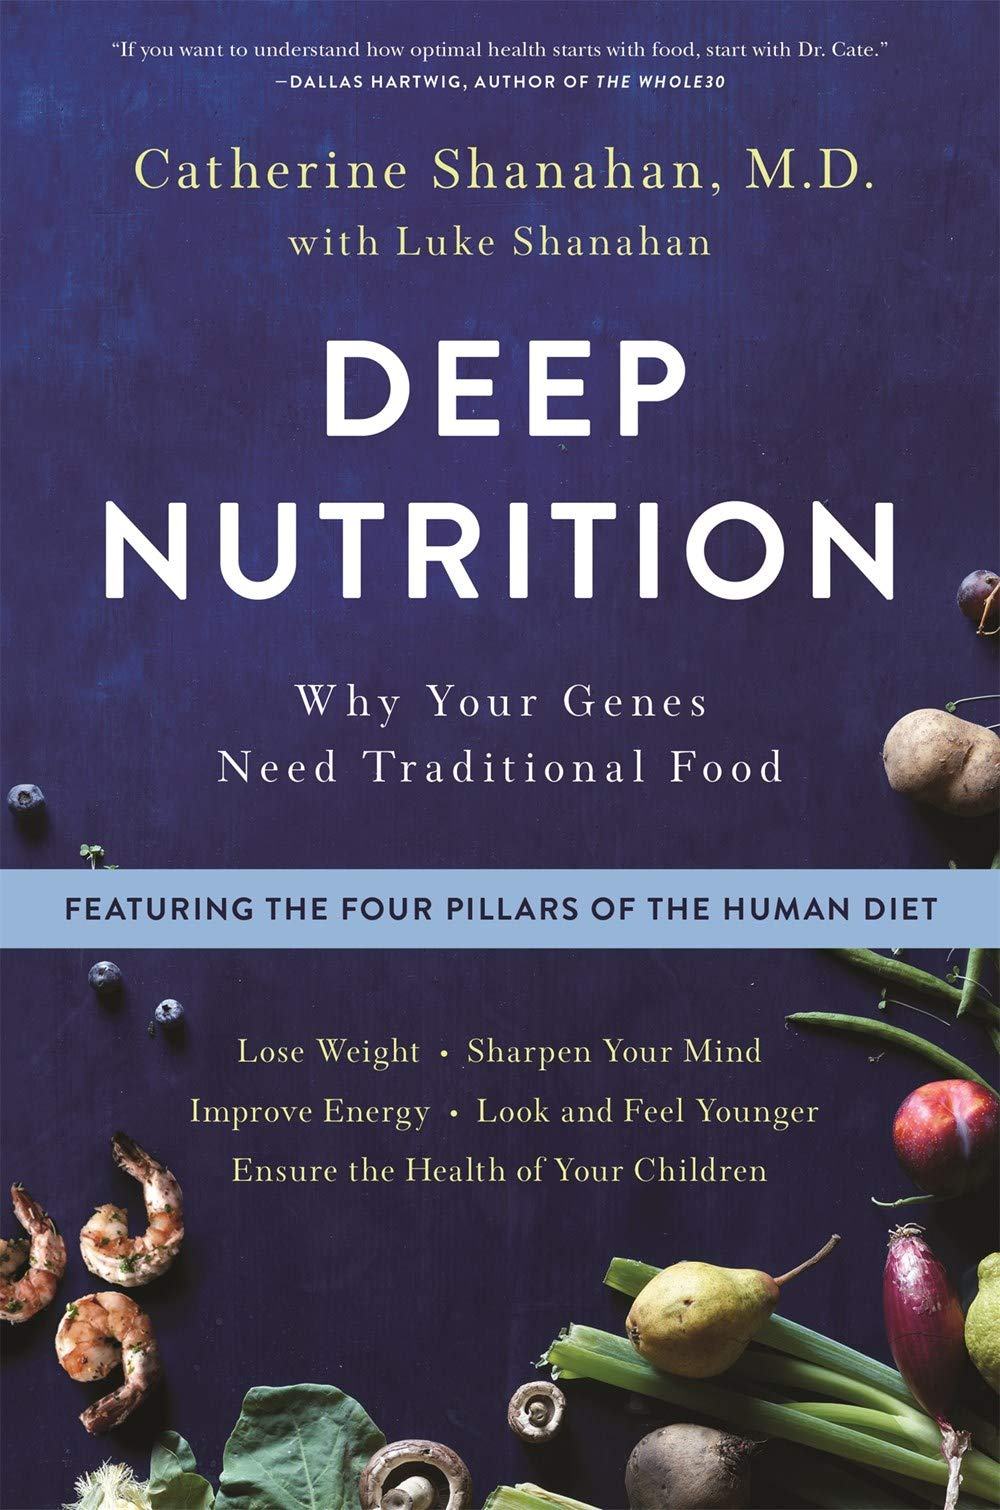 "Deep Nutrition: Why Your Genes Need Traditional Food - by Catherine Shanahan, M.D.A self-published phenomenon examining the habits that kept our ancestors disease-free―now with a prescriptive plan for ""The Human Diet"" to help us all live long, vital, healthy lives.Physician and biochemist Cate Shanahan, M.D. examined diets around the world known to help people live longer, healthier lives―diets like the Mediterranean, Okinawa, and ""Blue Zone""―and identified the four common nutritional habits, developed over millennia, that unfailingly produce strong, healthy, intelligent children, and active, vital elders, generation after generation. These four nutritional strategies―fresh food, fermented and sprouted foods, meat cooked on the bone, and organ meats―form the basis of what Dr. Cate calls ""The Human Diet.""Rooted in her experience as an elite athlete who used traditional foods to cure her own debilitating injuries, and combining her research with the latest discoveries in the field of epigenetics, Dr. Cate shows how all calories are not created equal; food is information that directs our cellular growth. Our family history does not determine our destiny: what you eat and how you live can alter your DNA in ways that affect your health and the health of your future children.Deep Nutrition offers a prescriptive plan for how anyone can begin eating The Human Diet to:*Improve mood*Eliminate cravings and the need to snack*Boost fertility and have healthier children*Sharpen cognition and memory*Eliminate allergies and disease*Build stronger bones and joints*Get younger, smoother skinDeep Nutrition cuts through today's culture of conflicting nutritional ideologies, showing how the habits of our ancestors can help us lead longer, healthier, more vital lives."